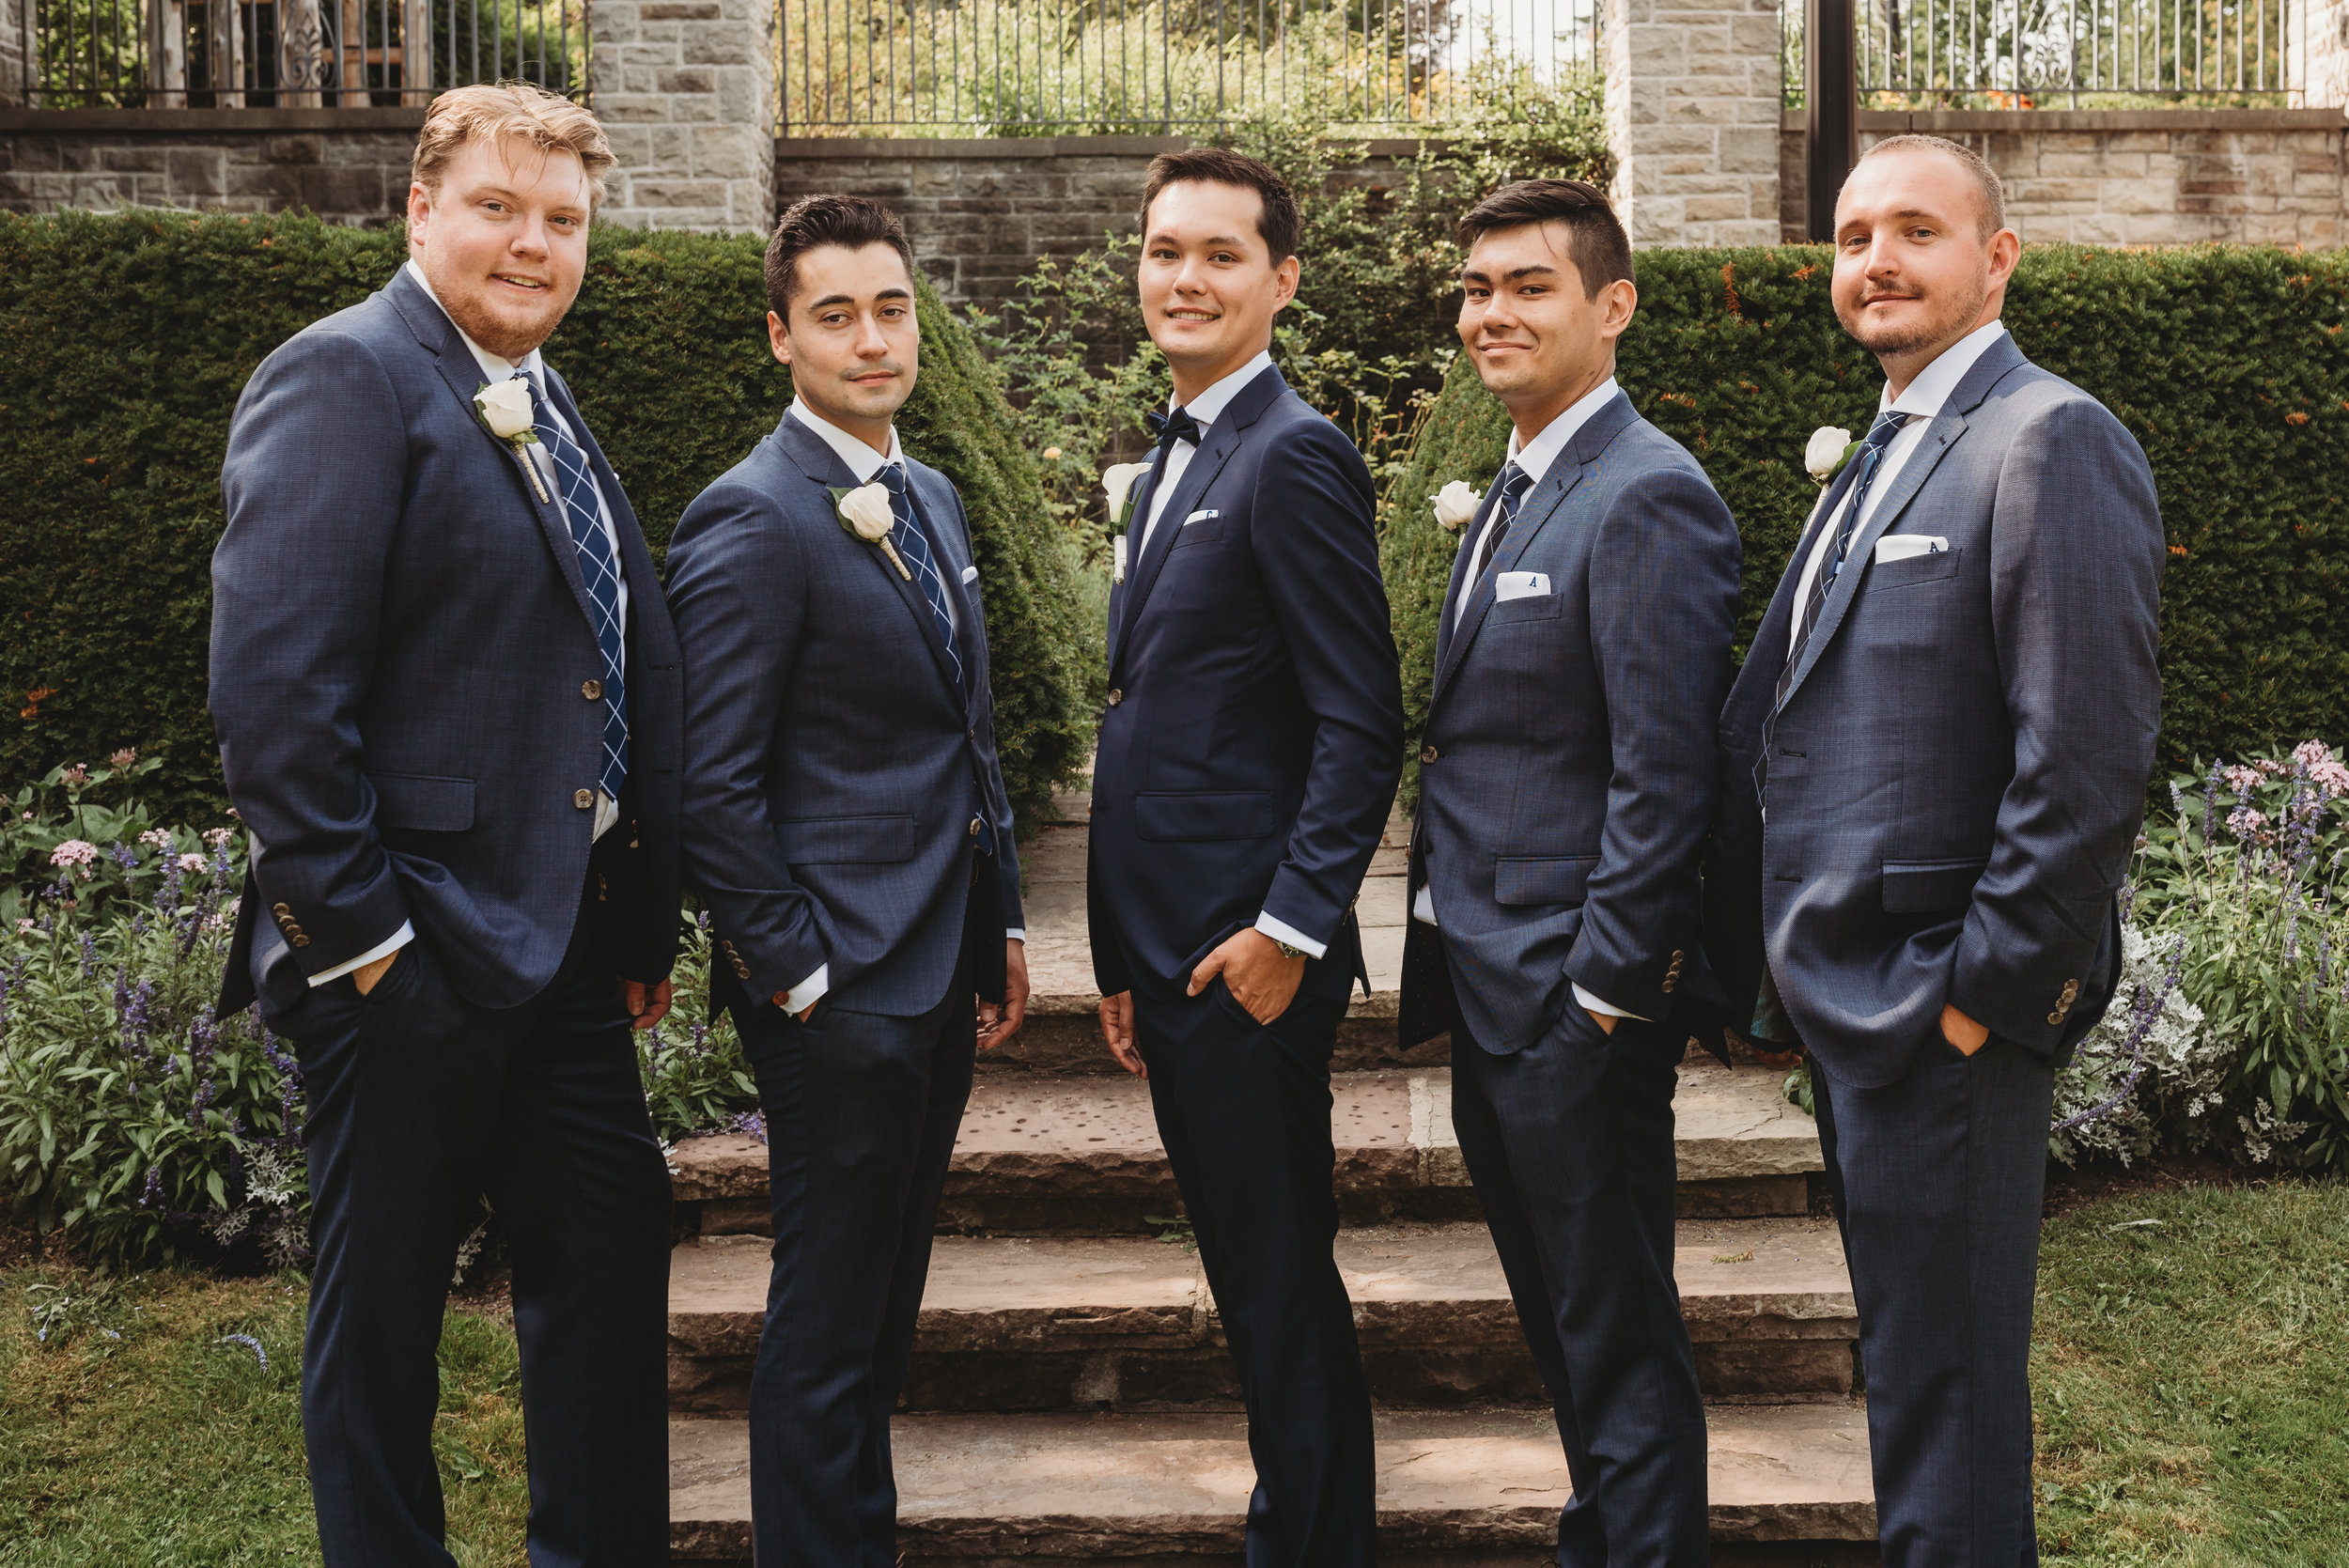 groomsmen-wedding-party-pictures-eglington-grand-wedding-by-willow-birch-photo-toronto-documentary-wedding-photographers.jpg